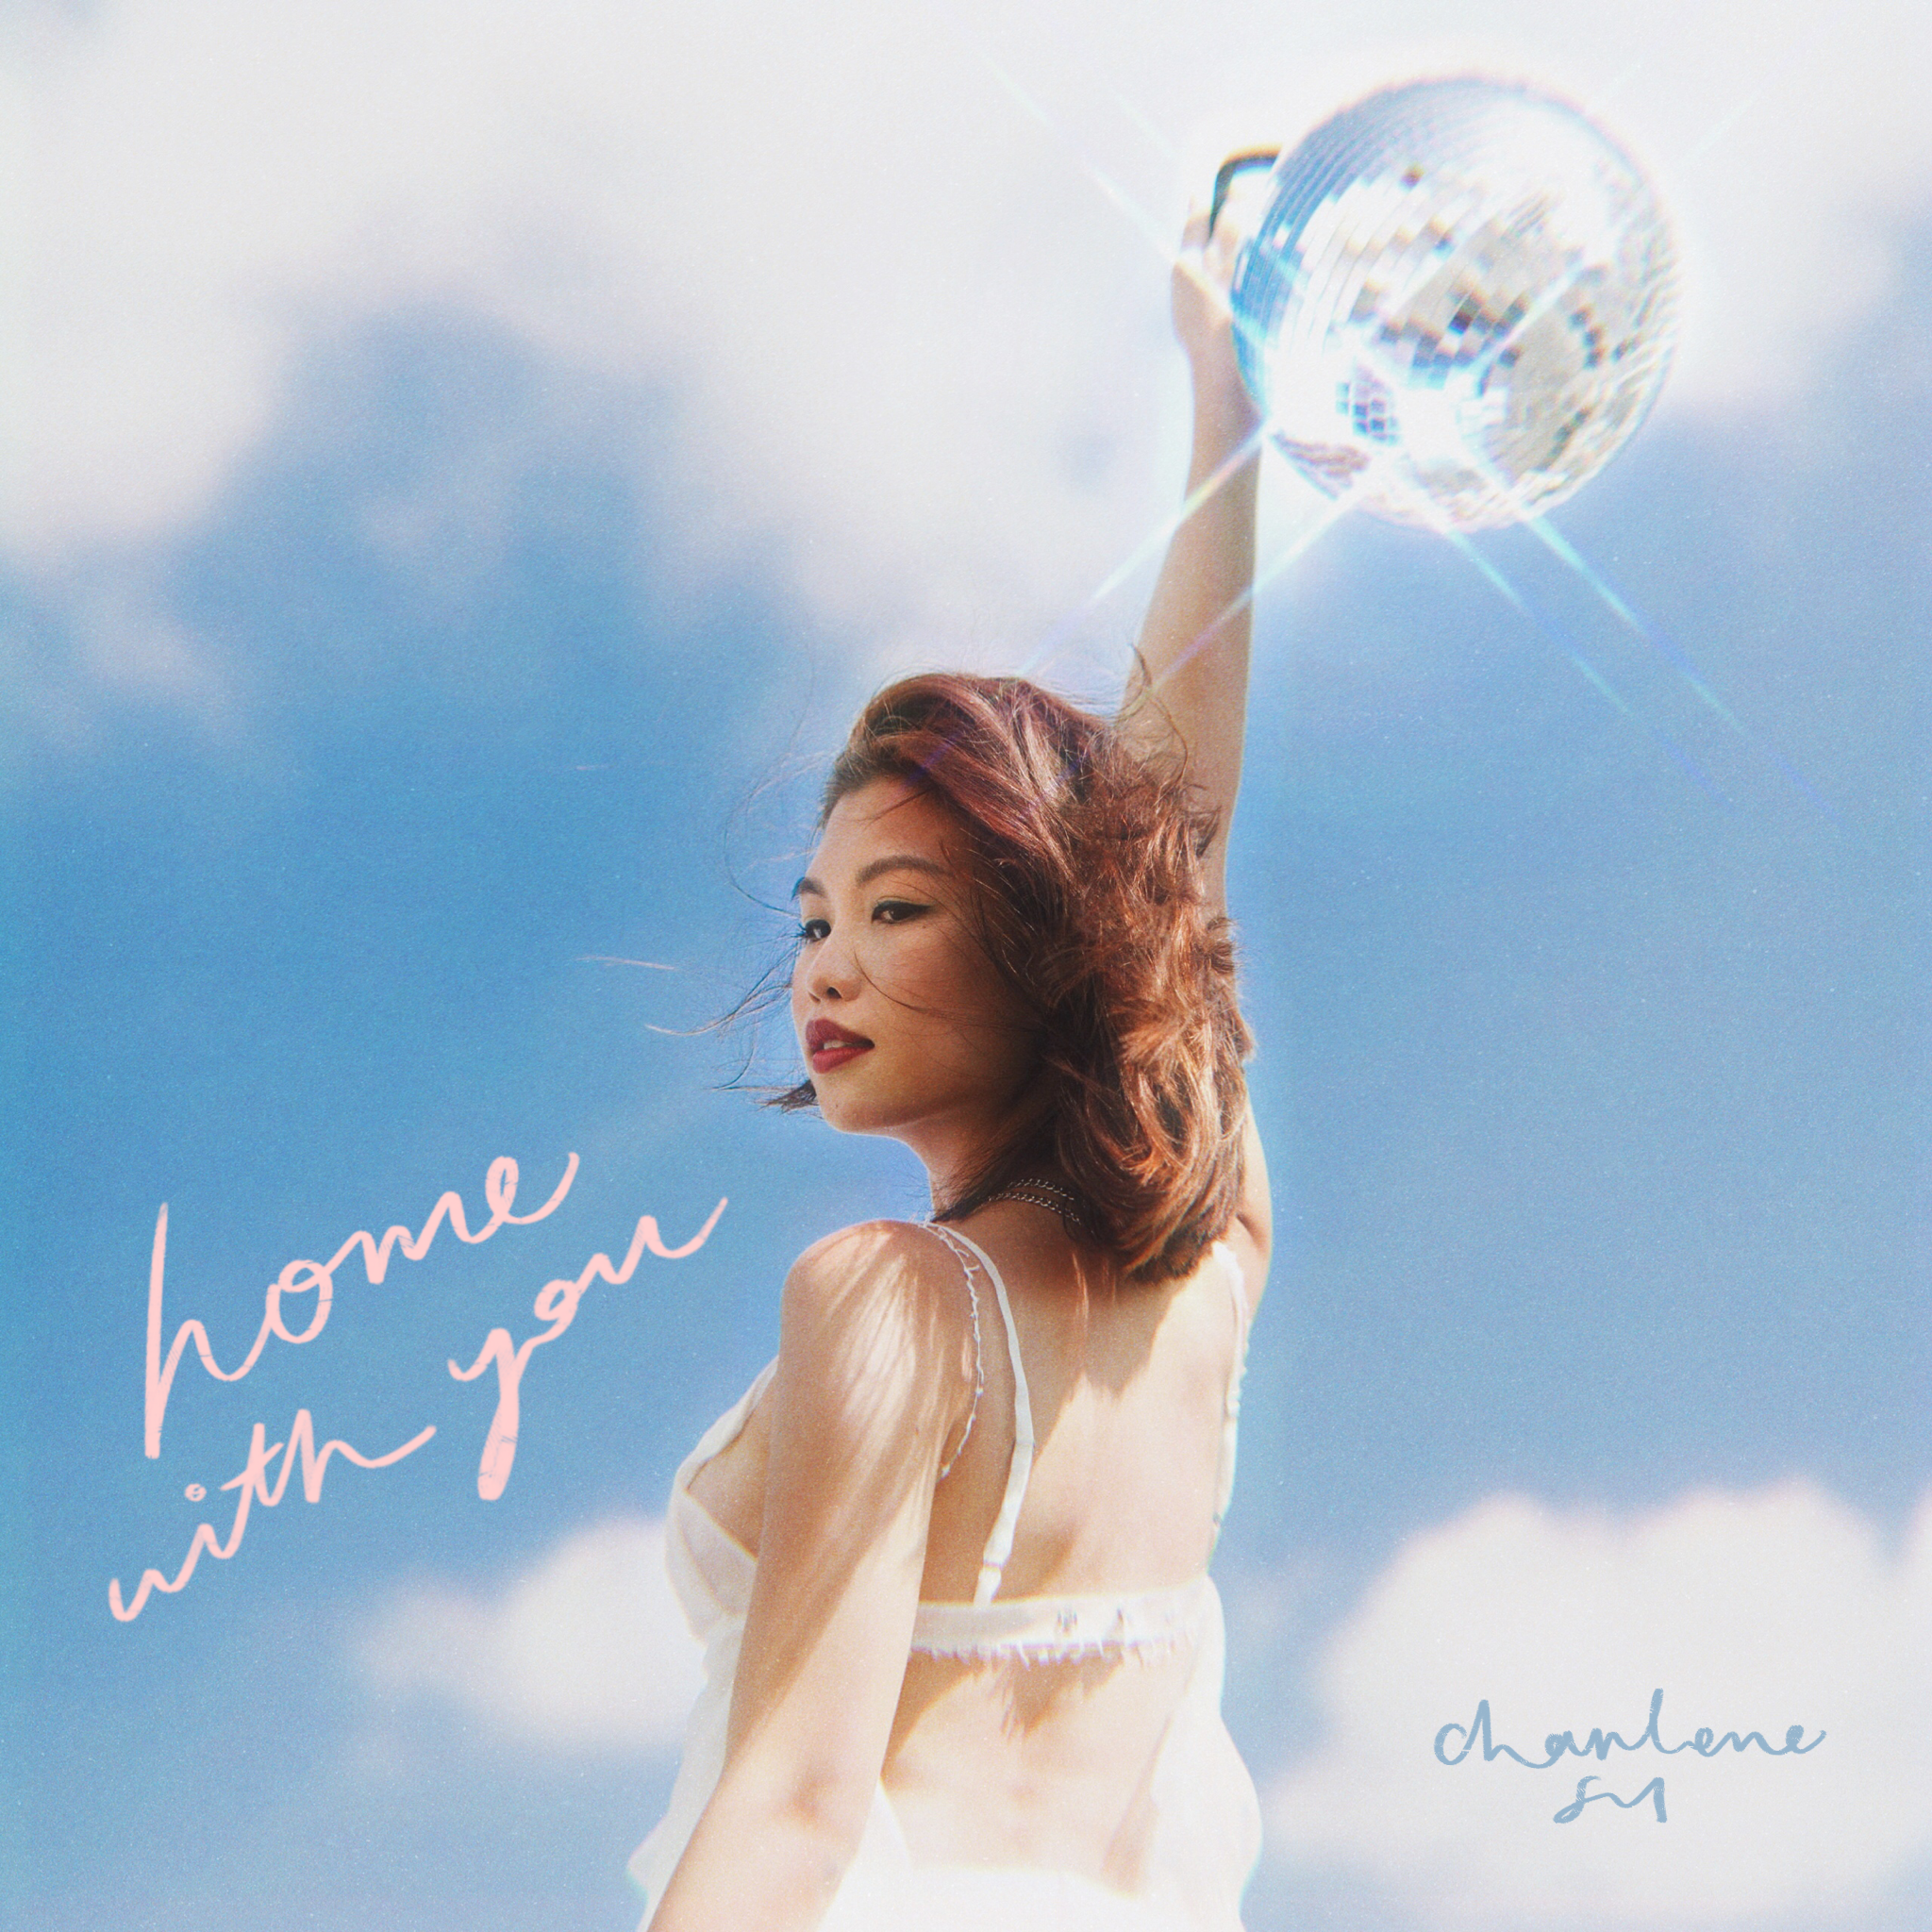 Home with you cover art